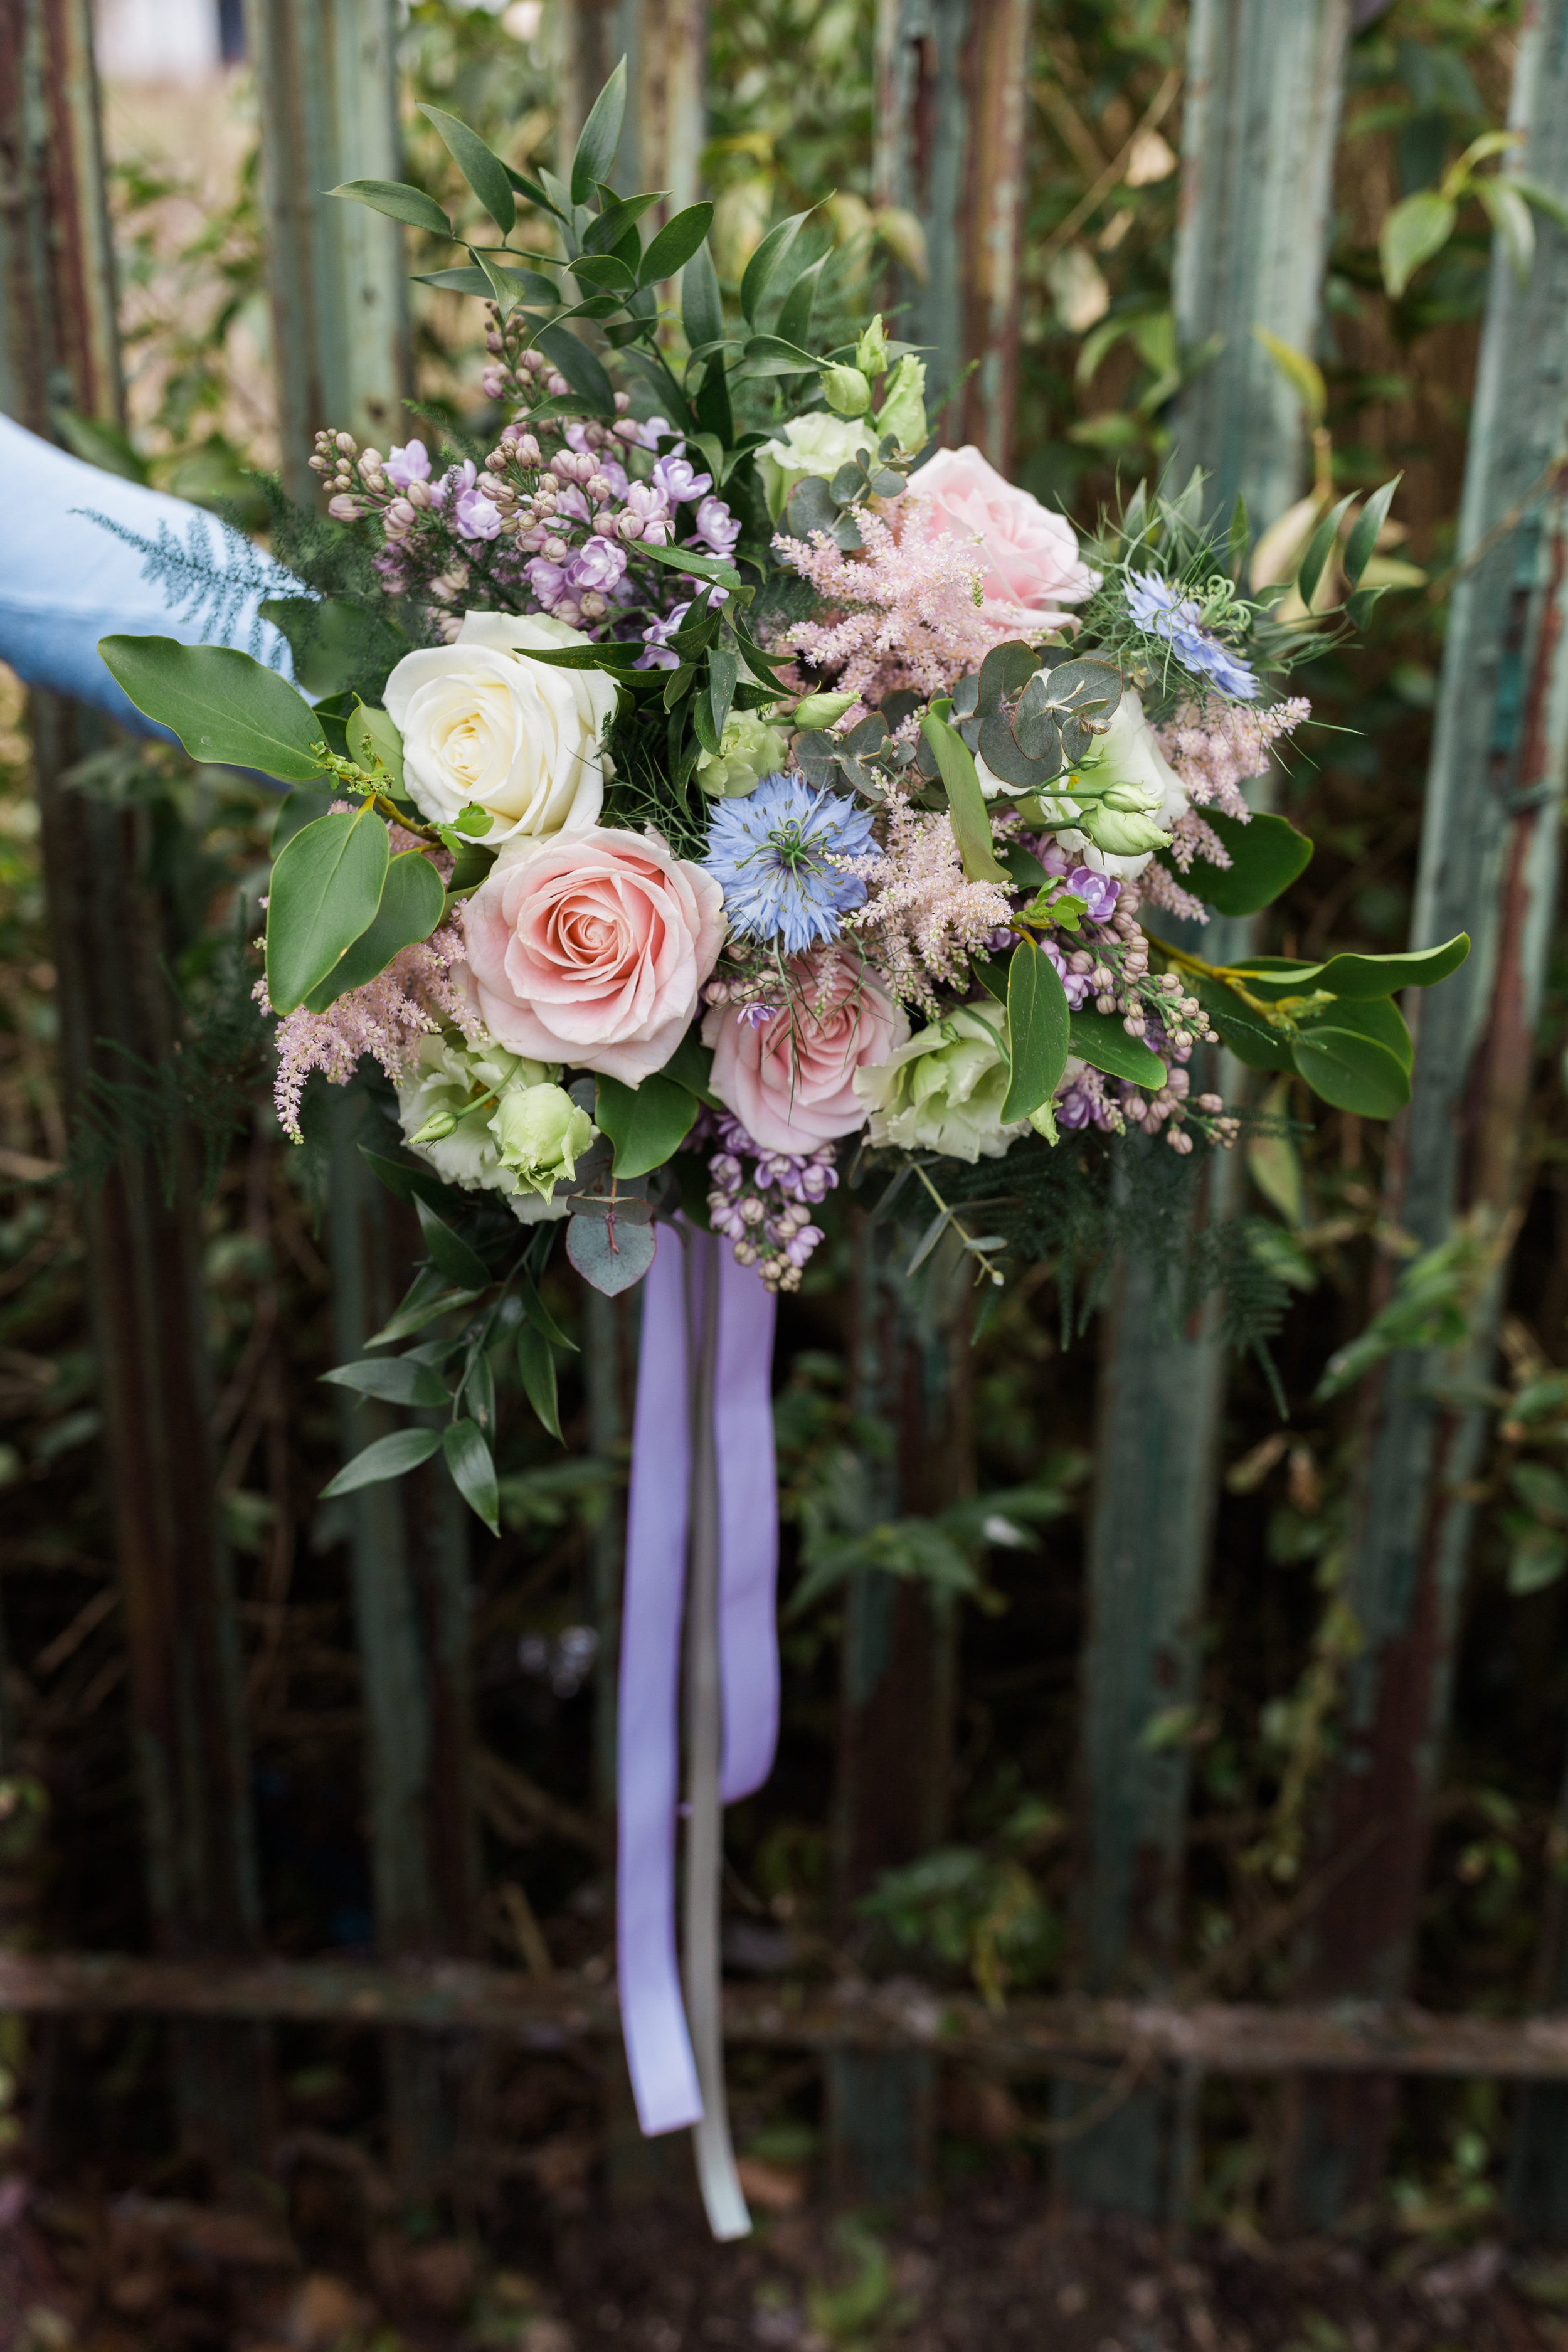 Another shot of Laura's bouquet.